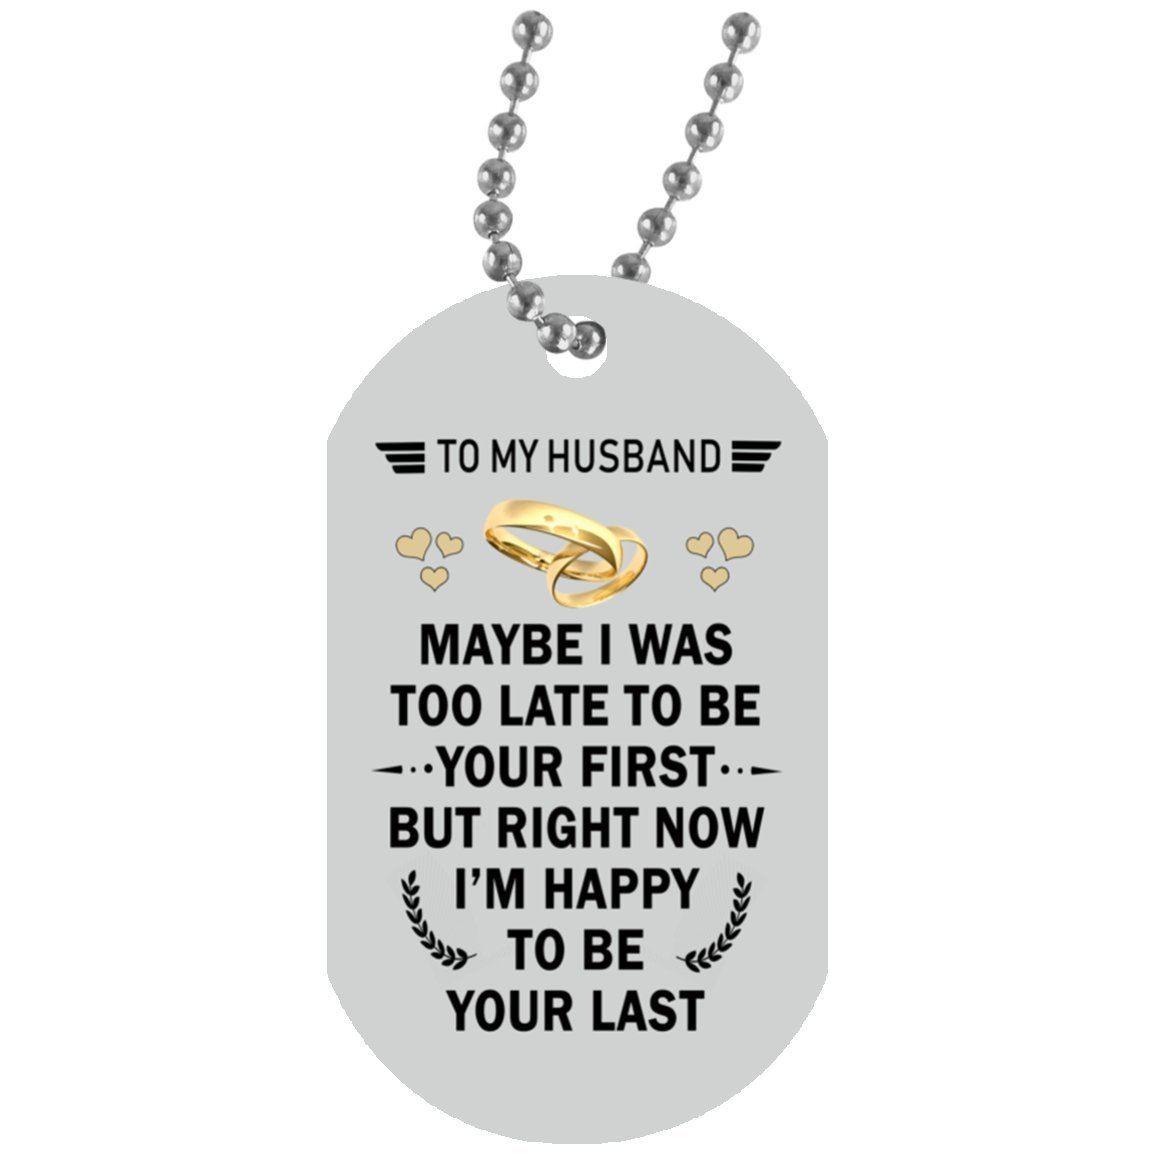 Wife and Husband Dog Tag necklace - my Husband angel necklace from Wife - Great Gift for Your Husband, On Wedding day, 30 inch silver beaded chain included with purchase by iGifts